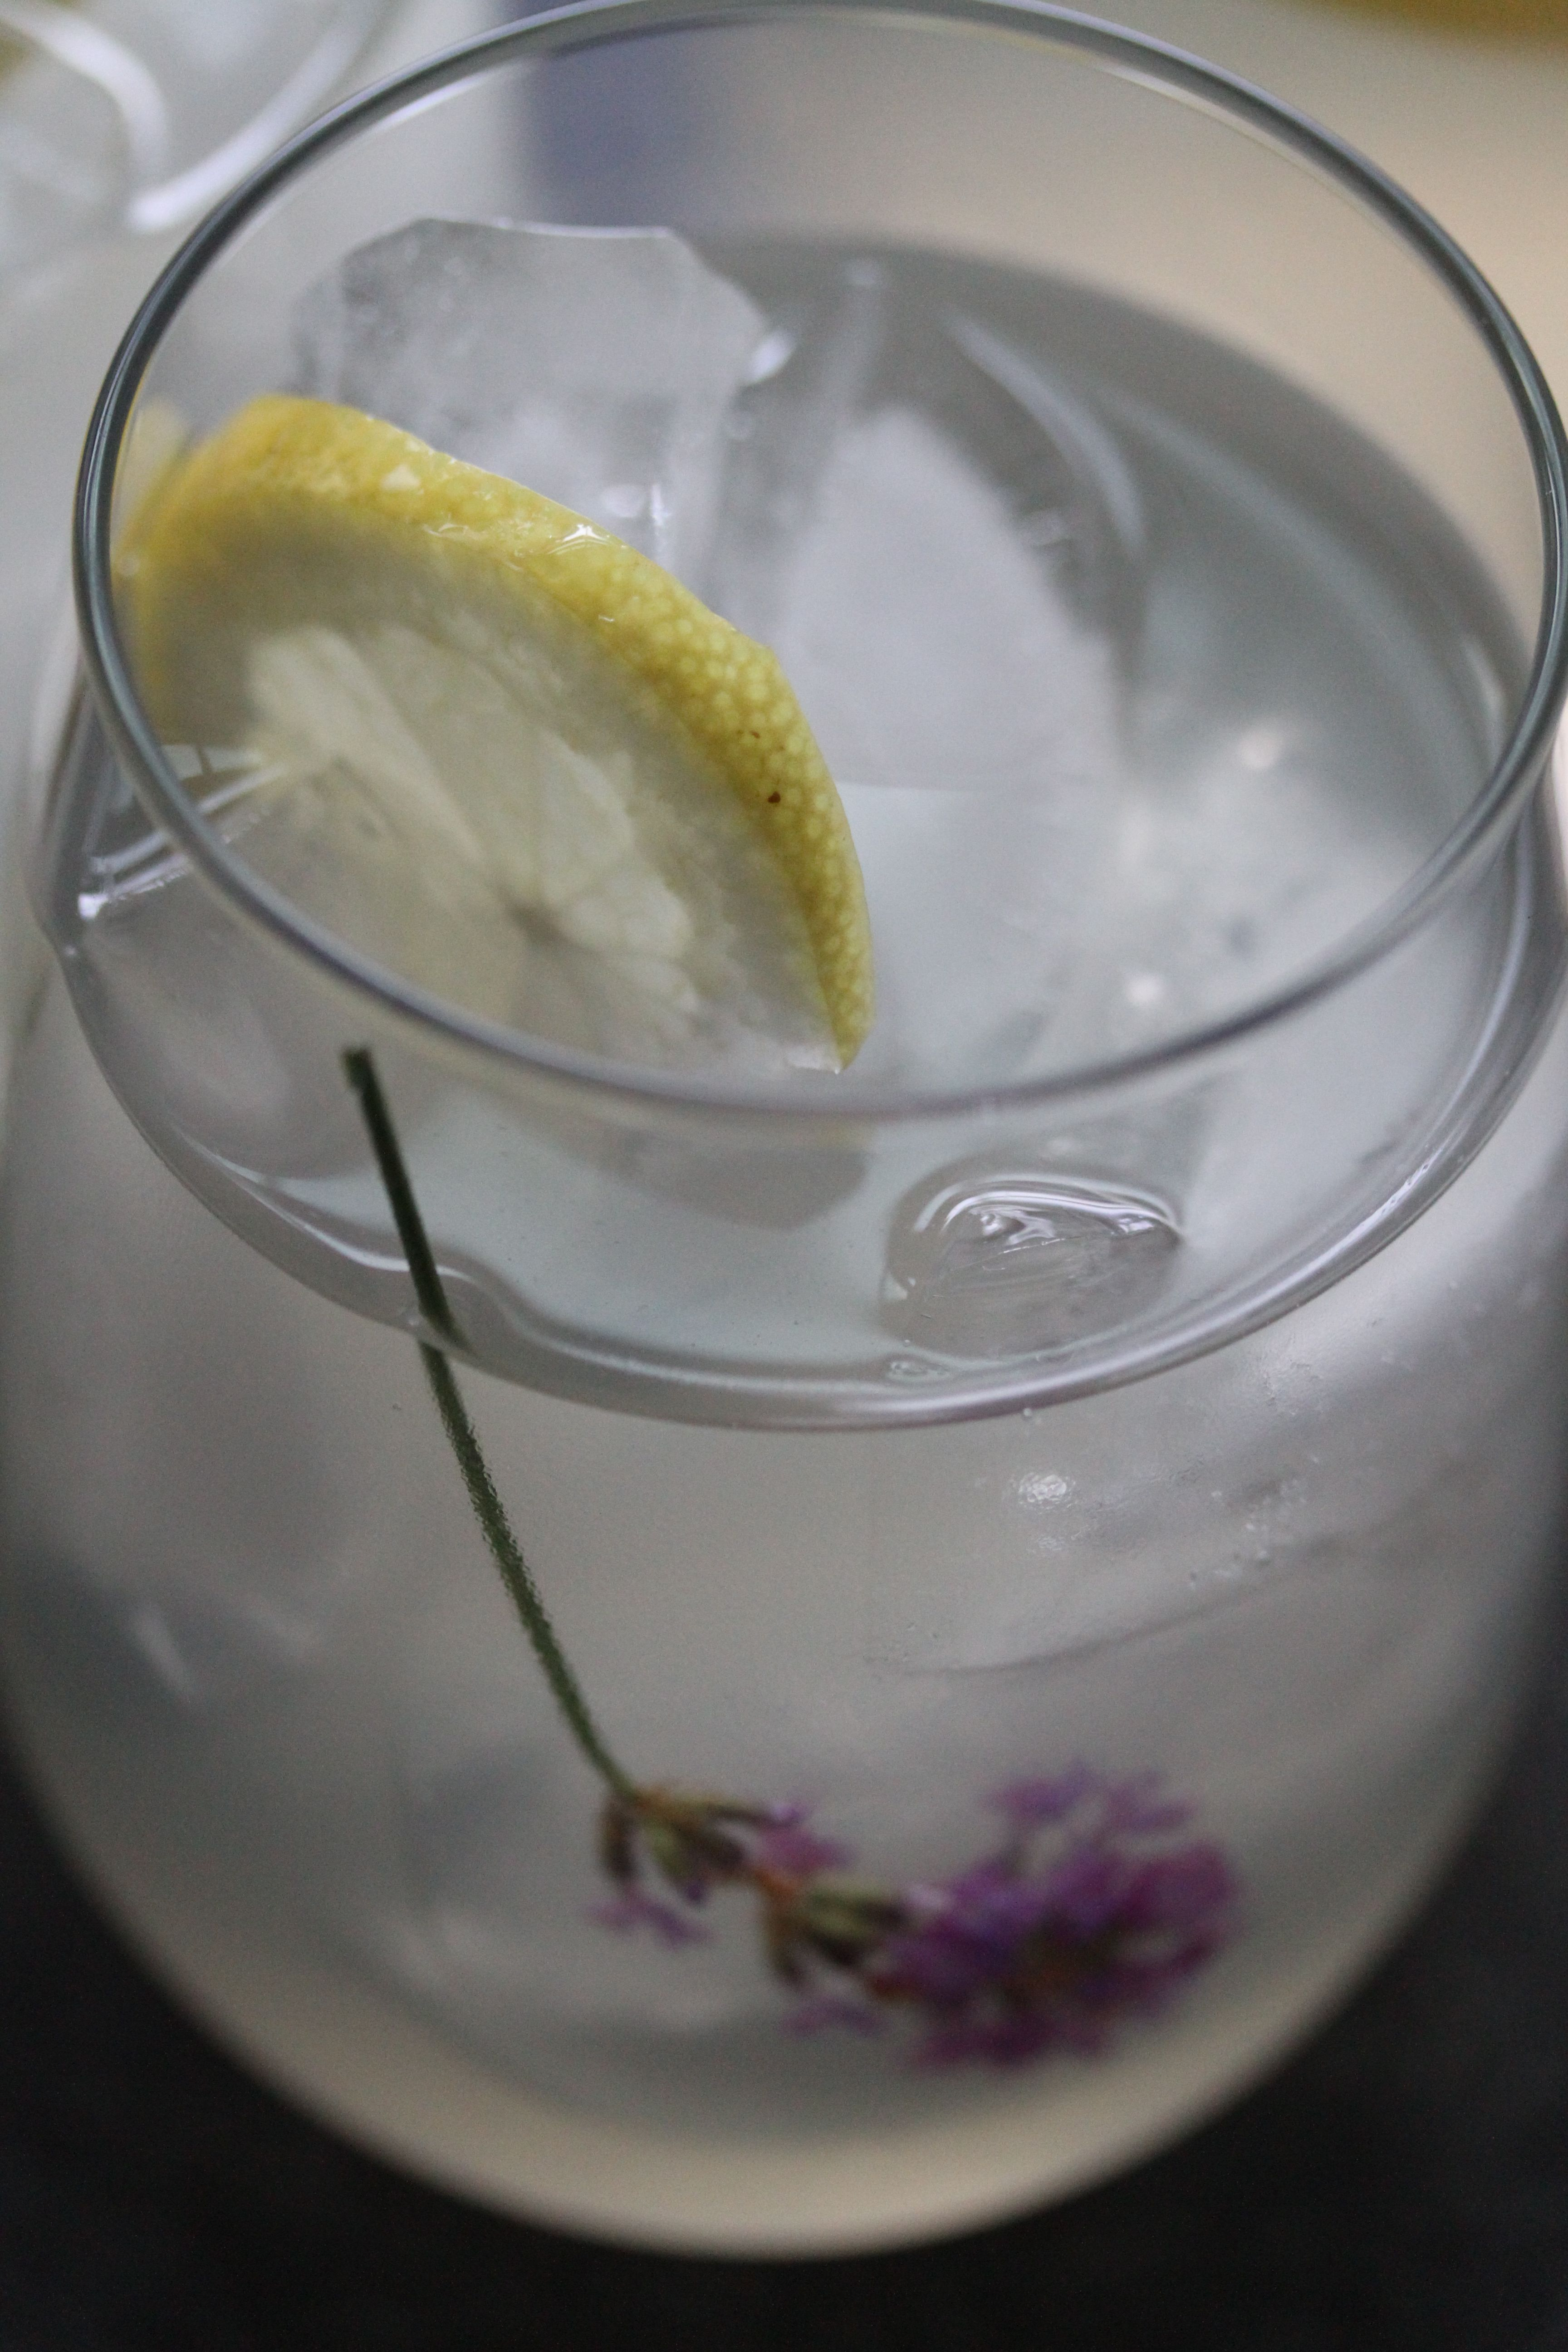 Spike it if you like with something clean like vodka. Or just enjoy the lemony goodness as it is. Thirsty yet?